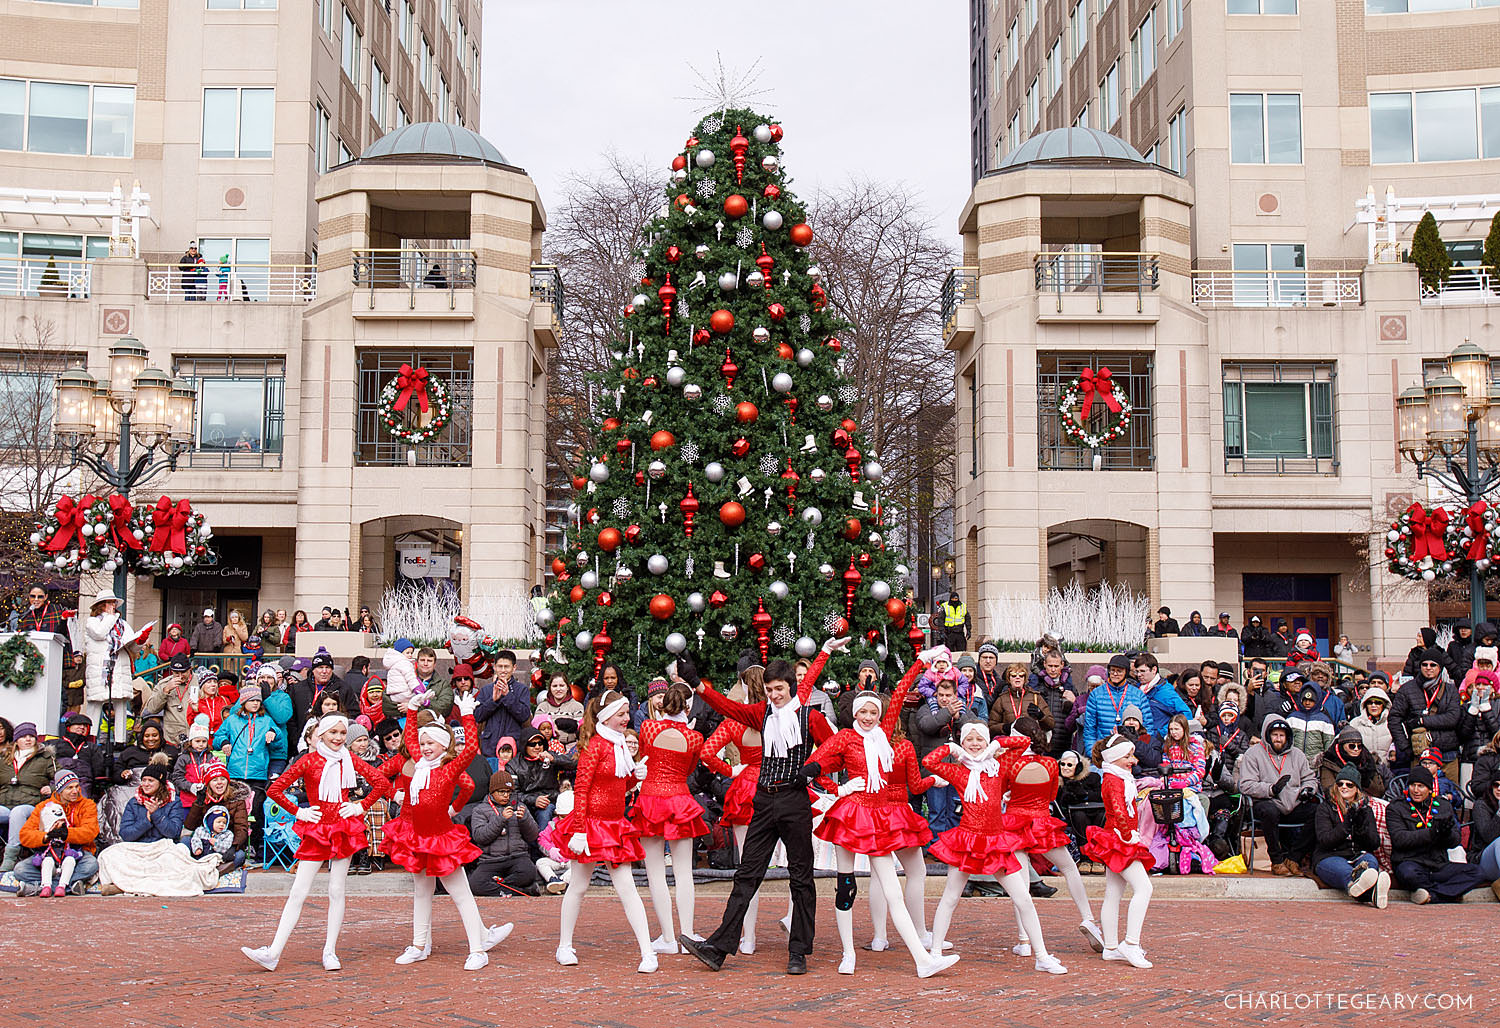 Dancers in the Reston Holiday Parade (Reston, Virginia)